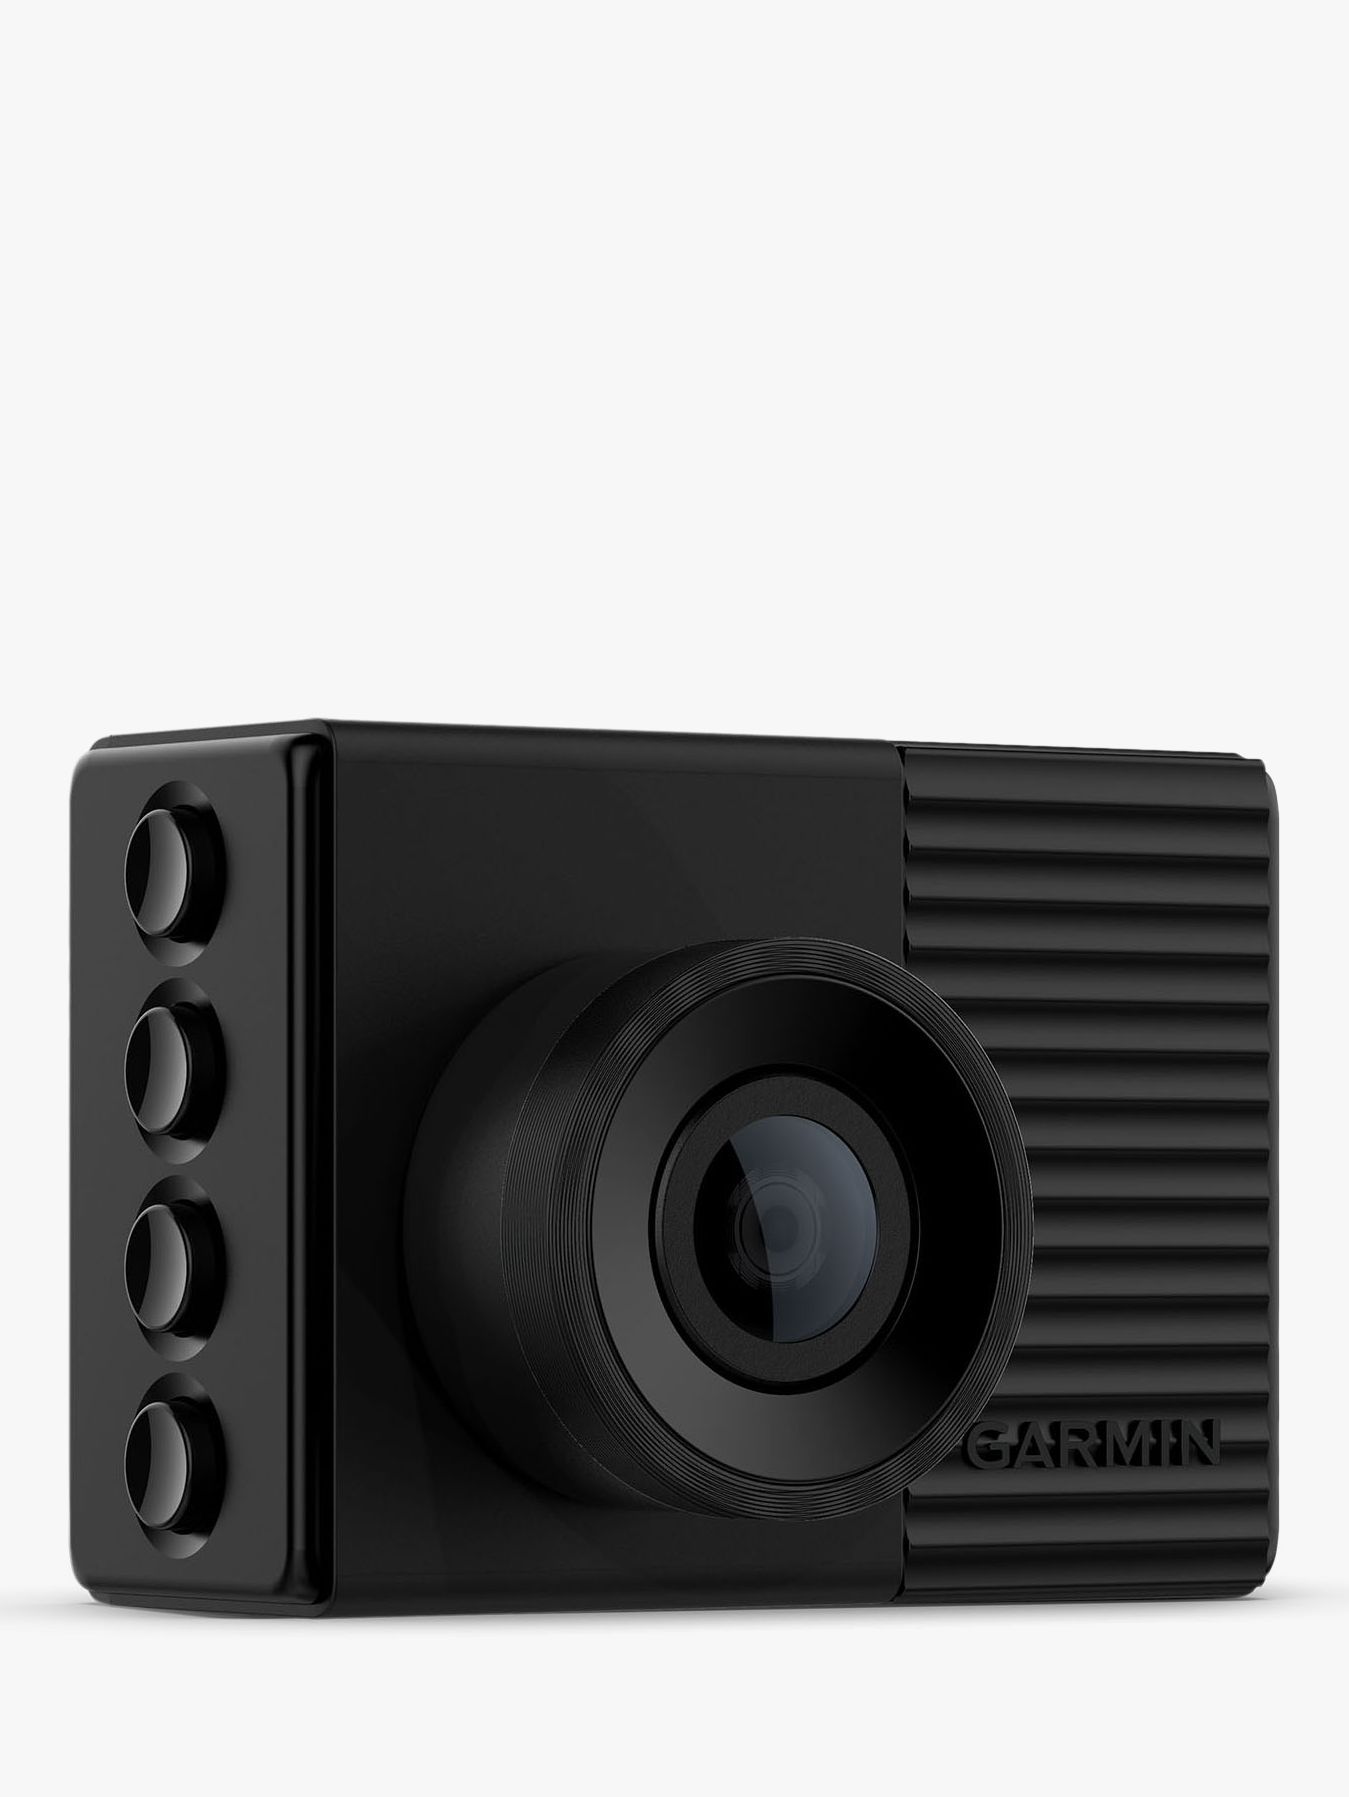 Garmin Dash Cam 56, 1440p HDR with GPS & Voice Control